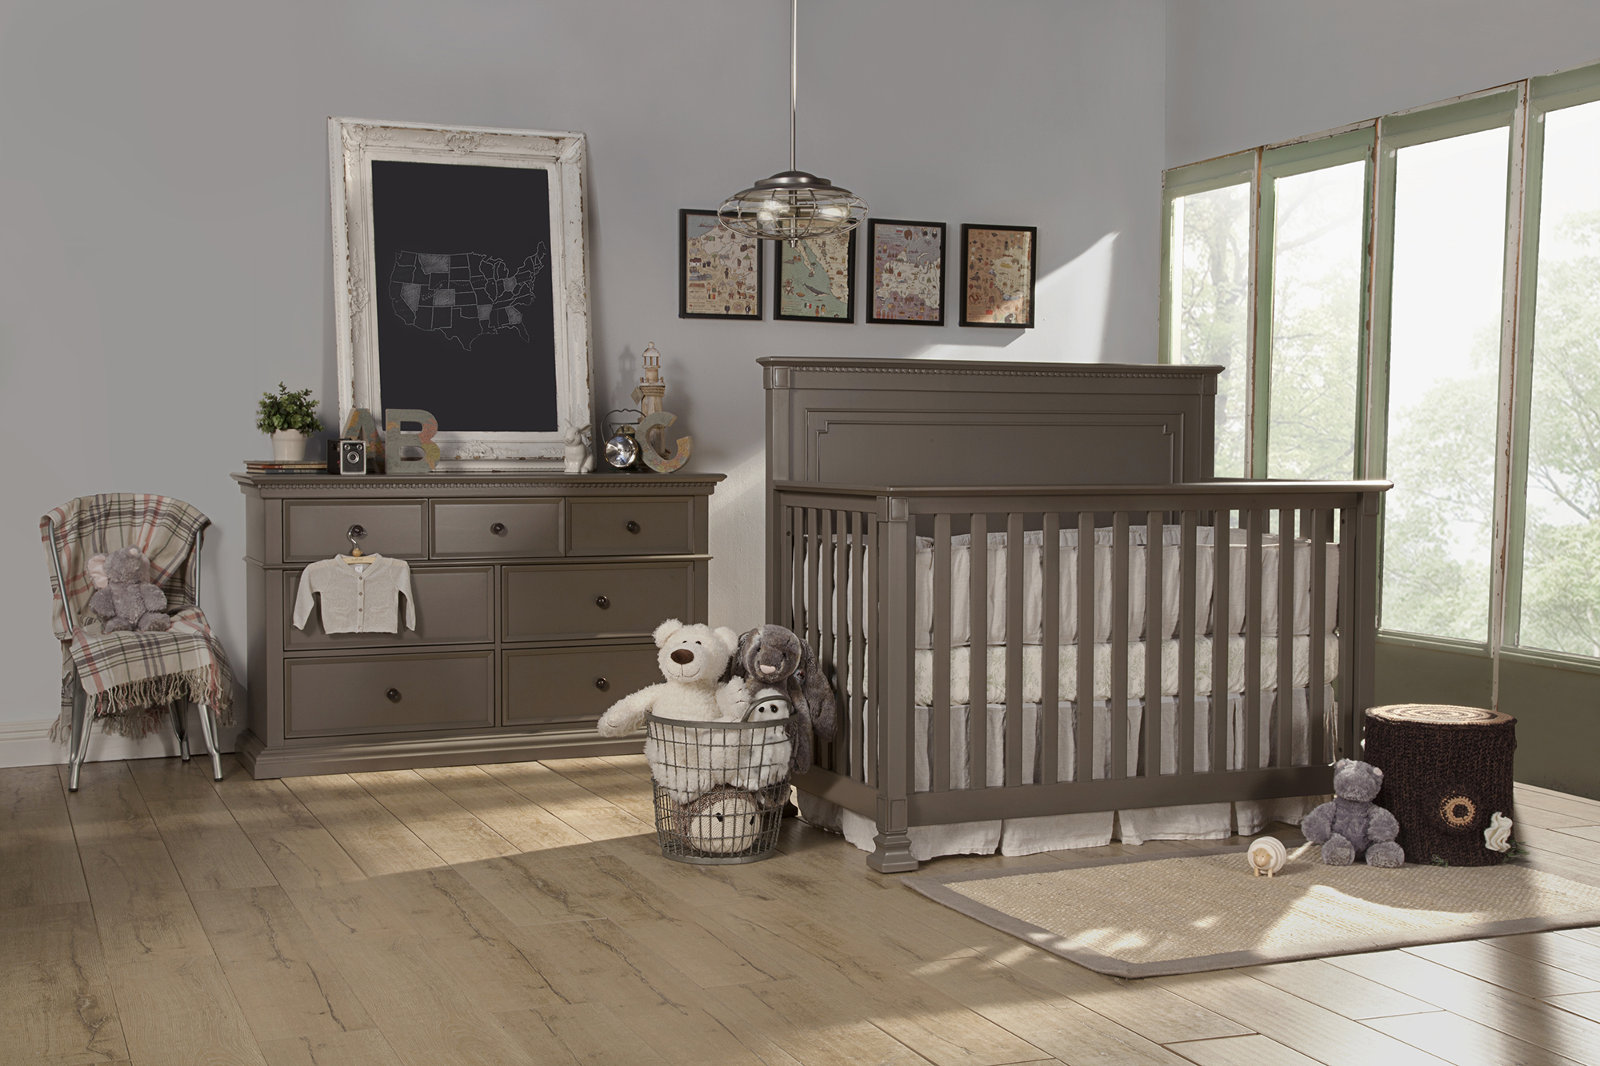 franklin u0026 ben nelson 4in1 convertible crib set with toddler rail in washed grey